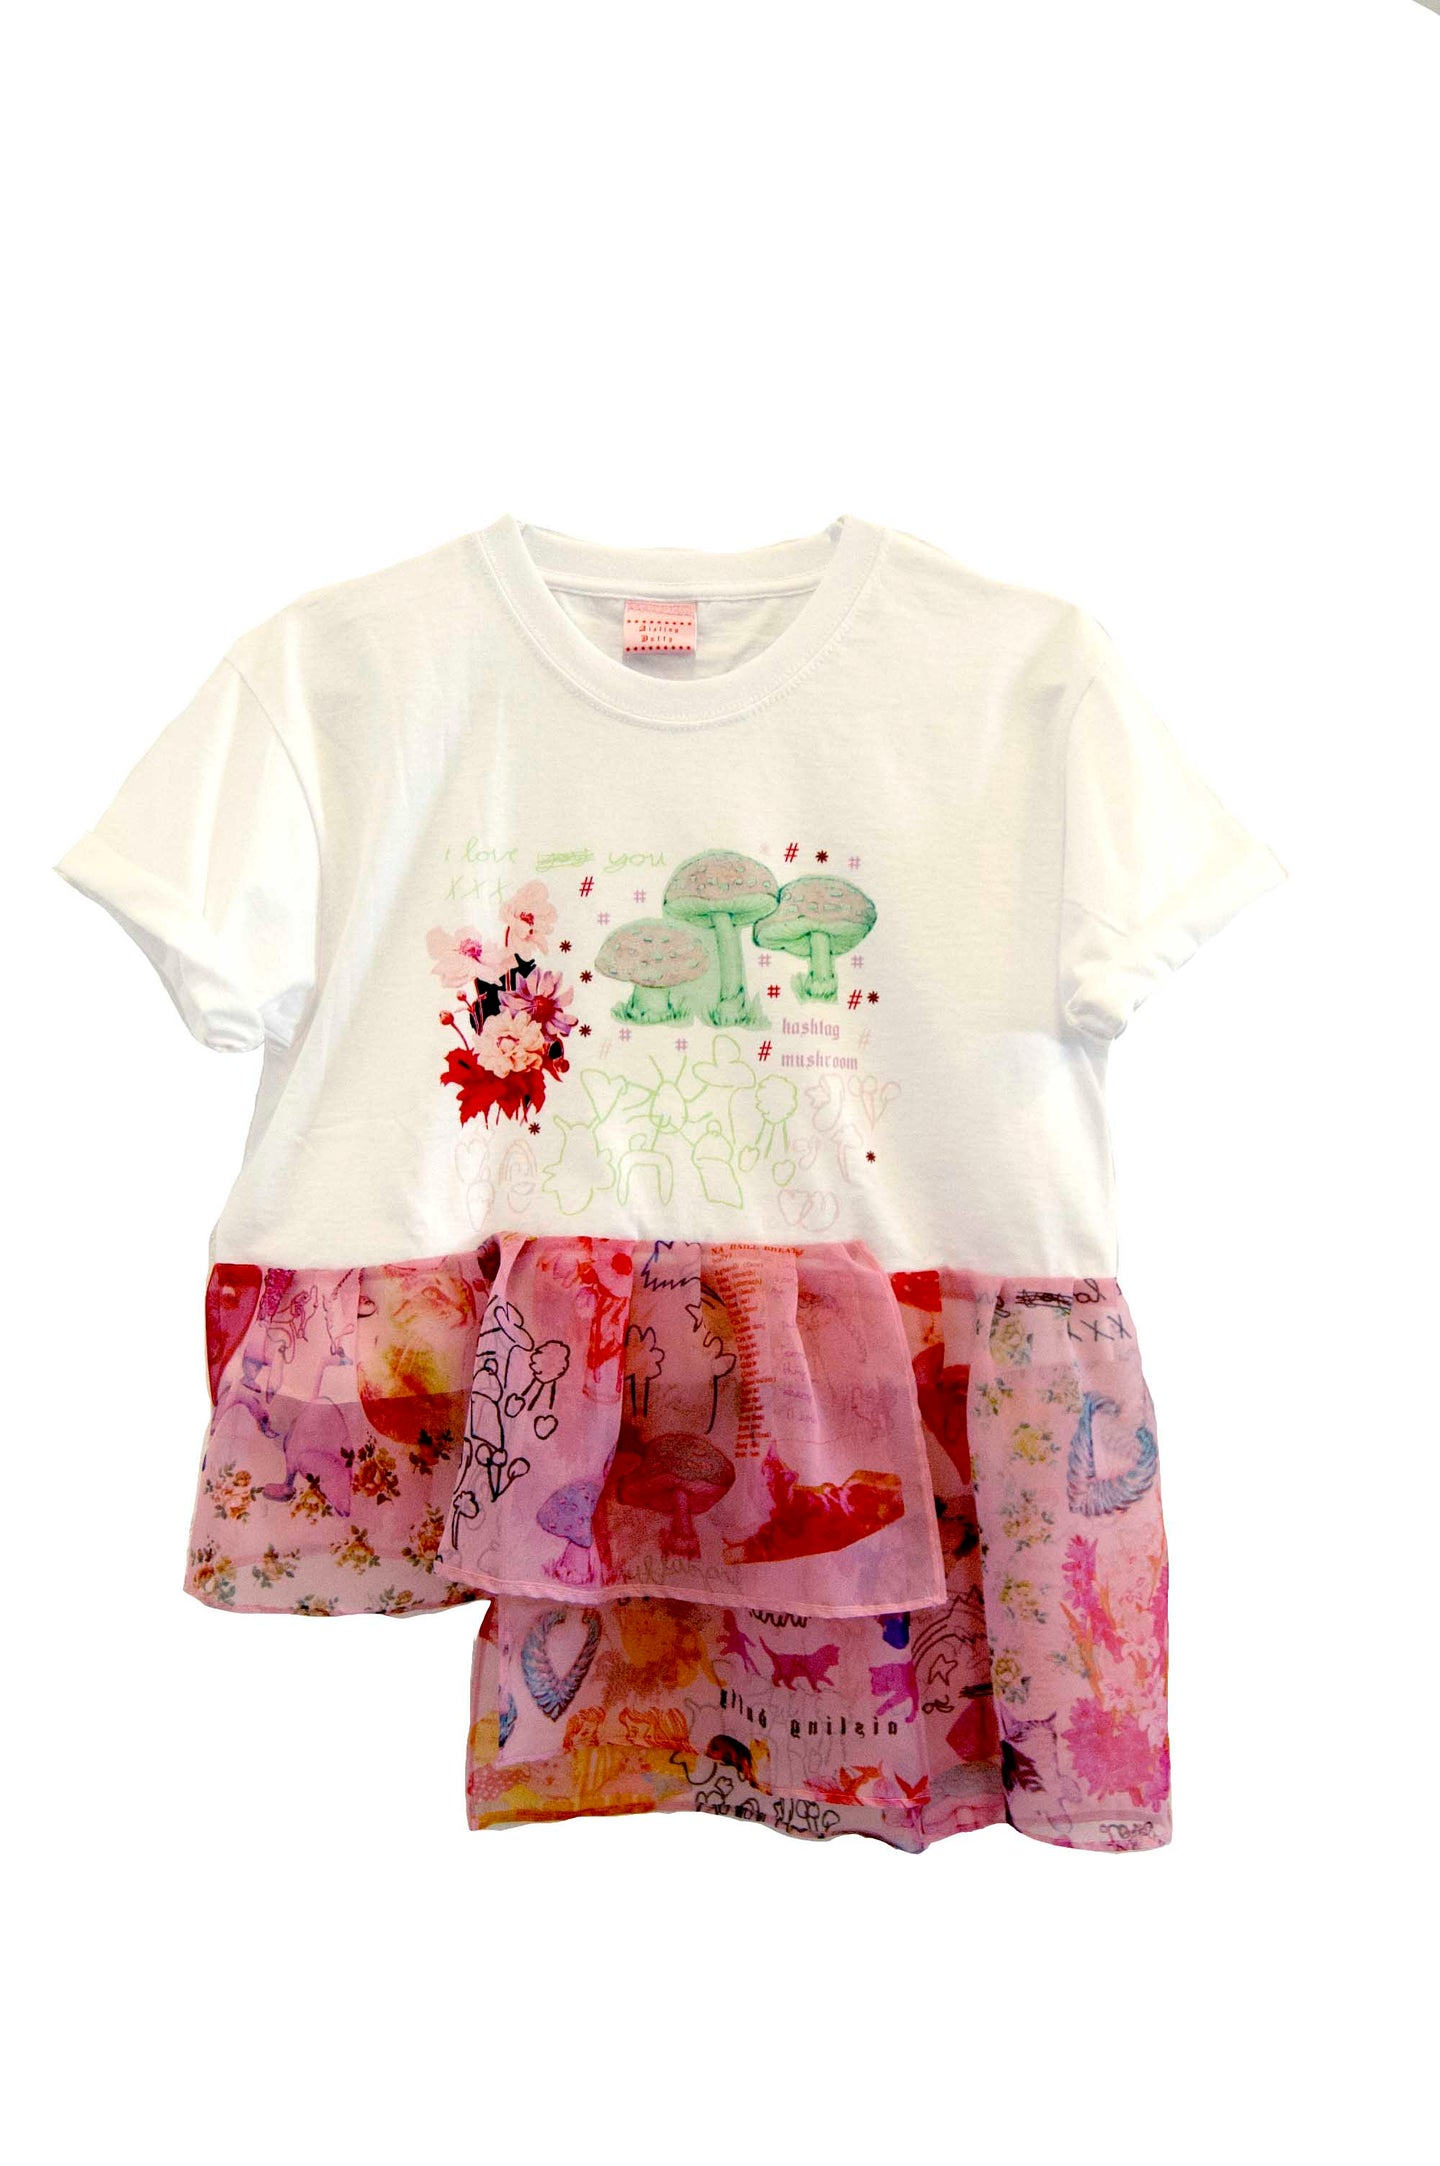 #Hashtag Mushroom *Limited Edition* ~ Chiffon Ruffle Cropped Cotton T-Shirt